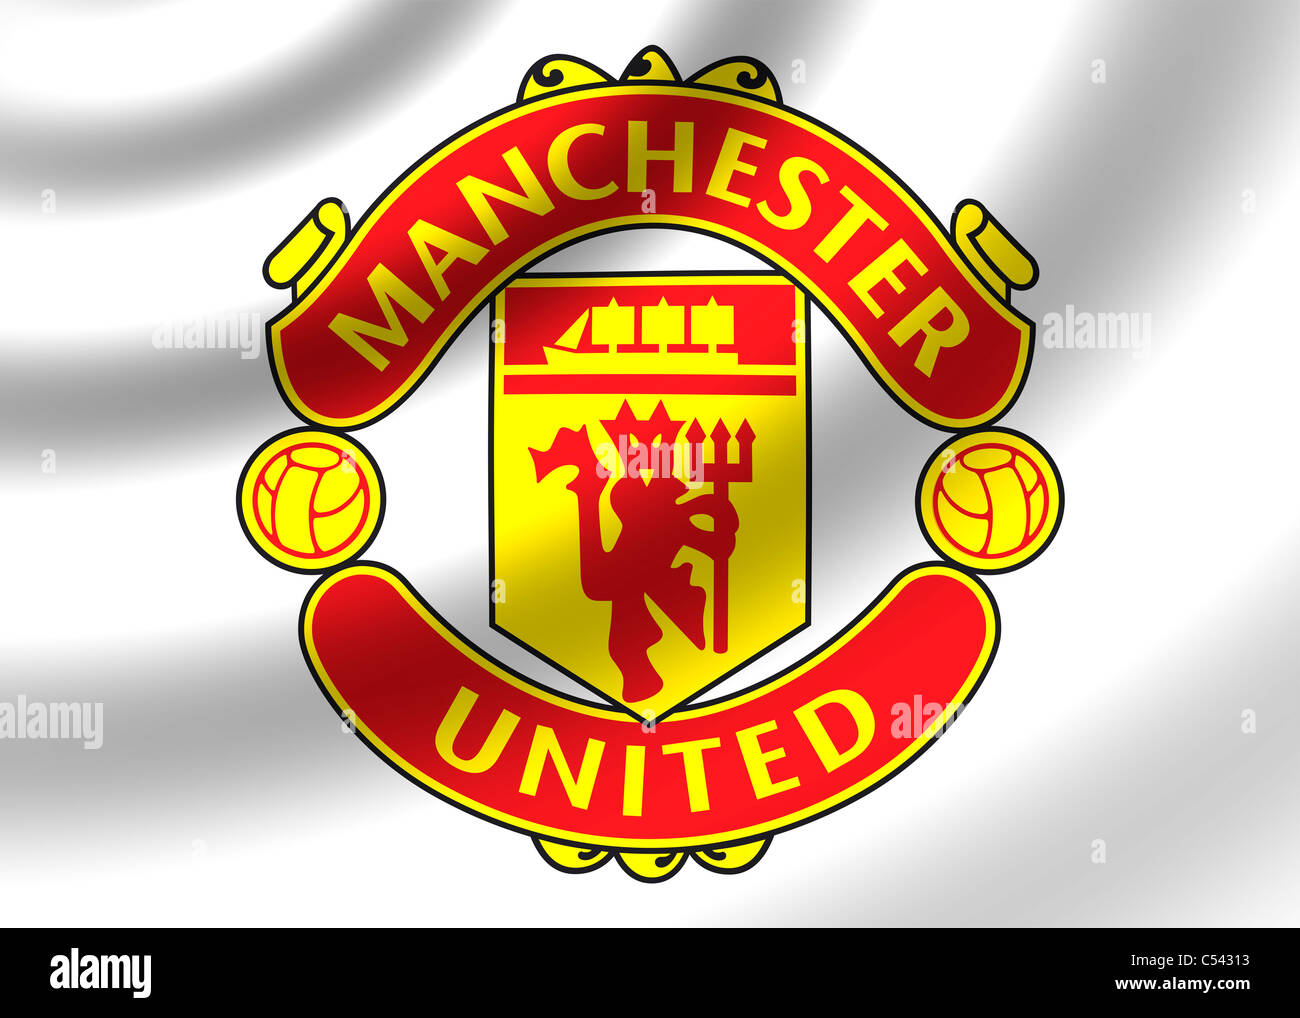 Manchester united flag logo symbol icon stock photo 37584207 alamy manchester united flag logo symbol icon voltagebd Image collections